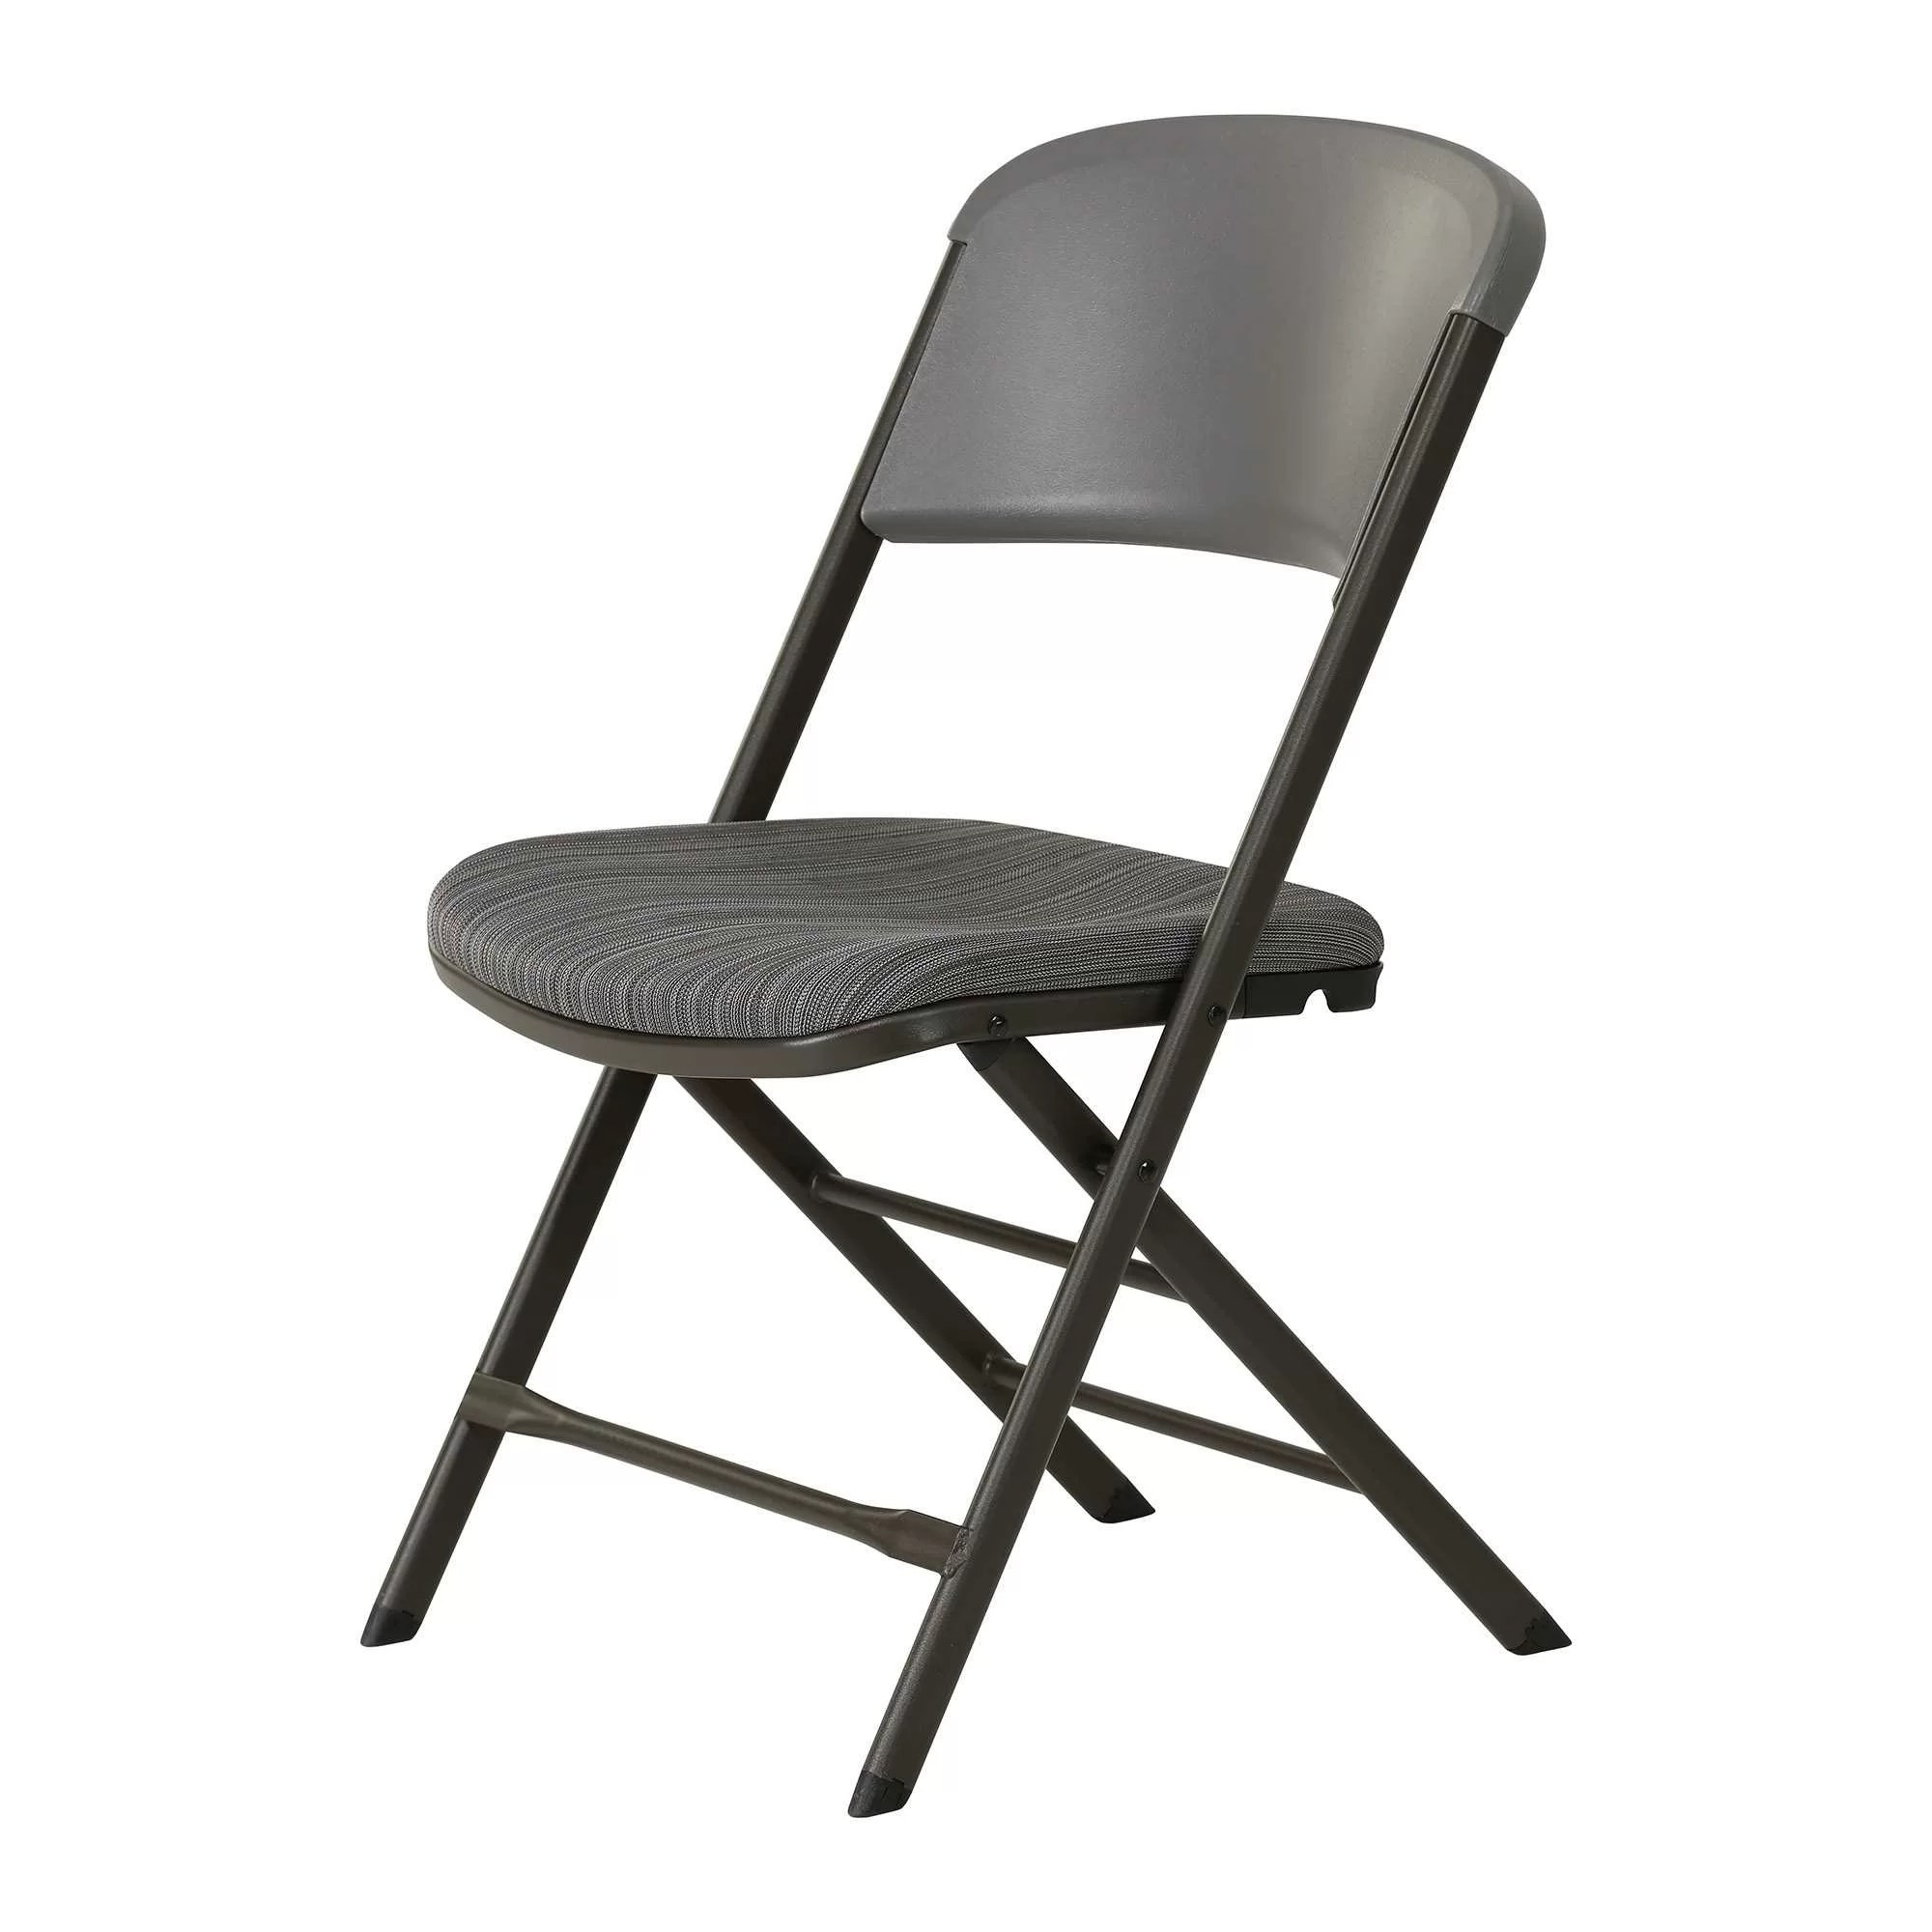 cloth padded folding chairs eames replica chair lifetime commercial fabric reviews wayfair